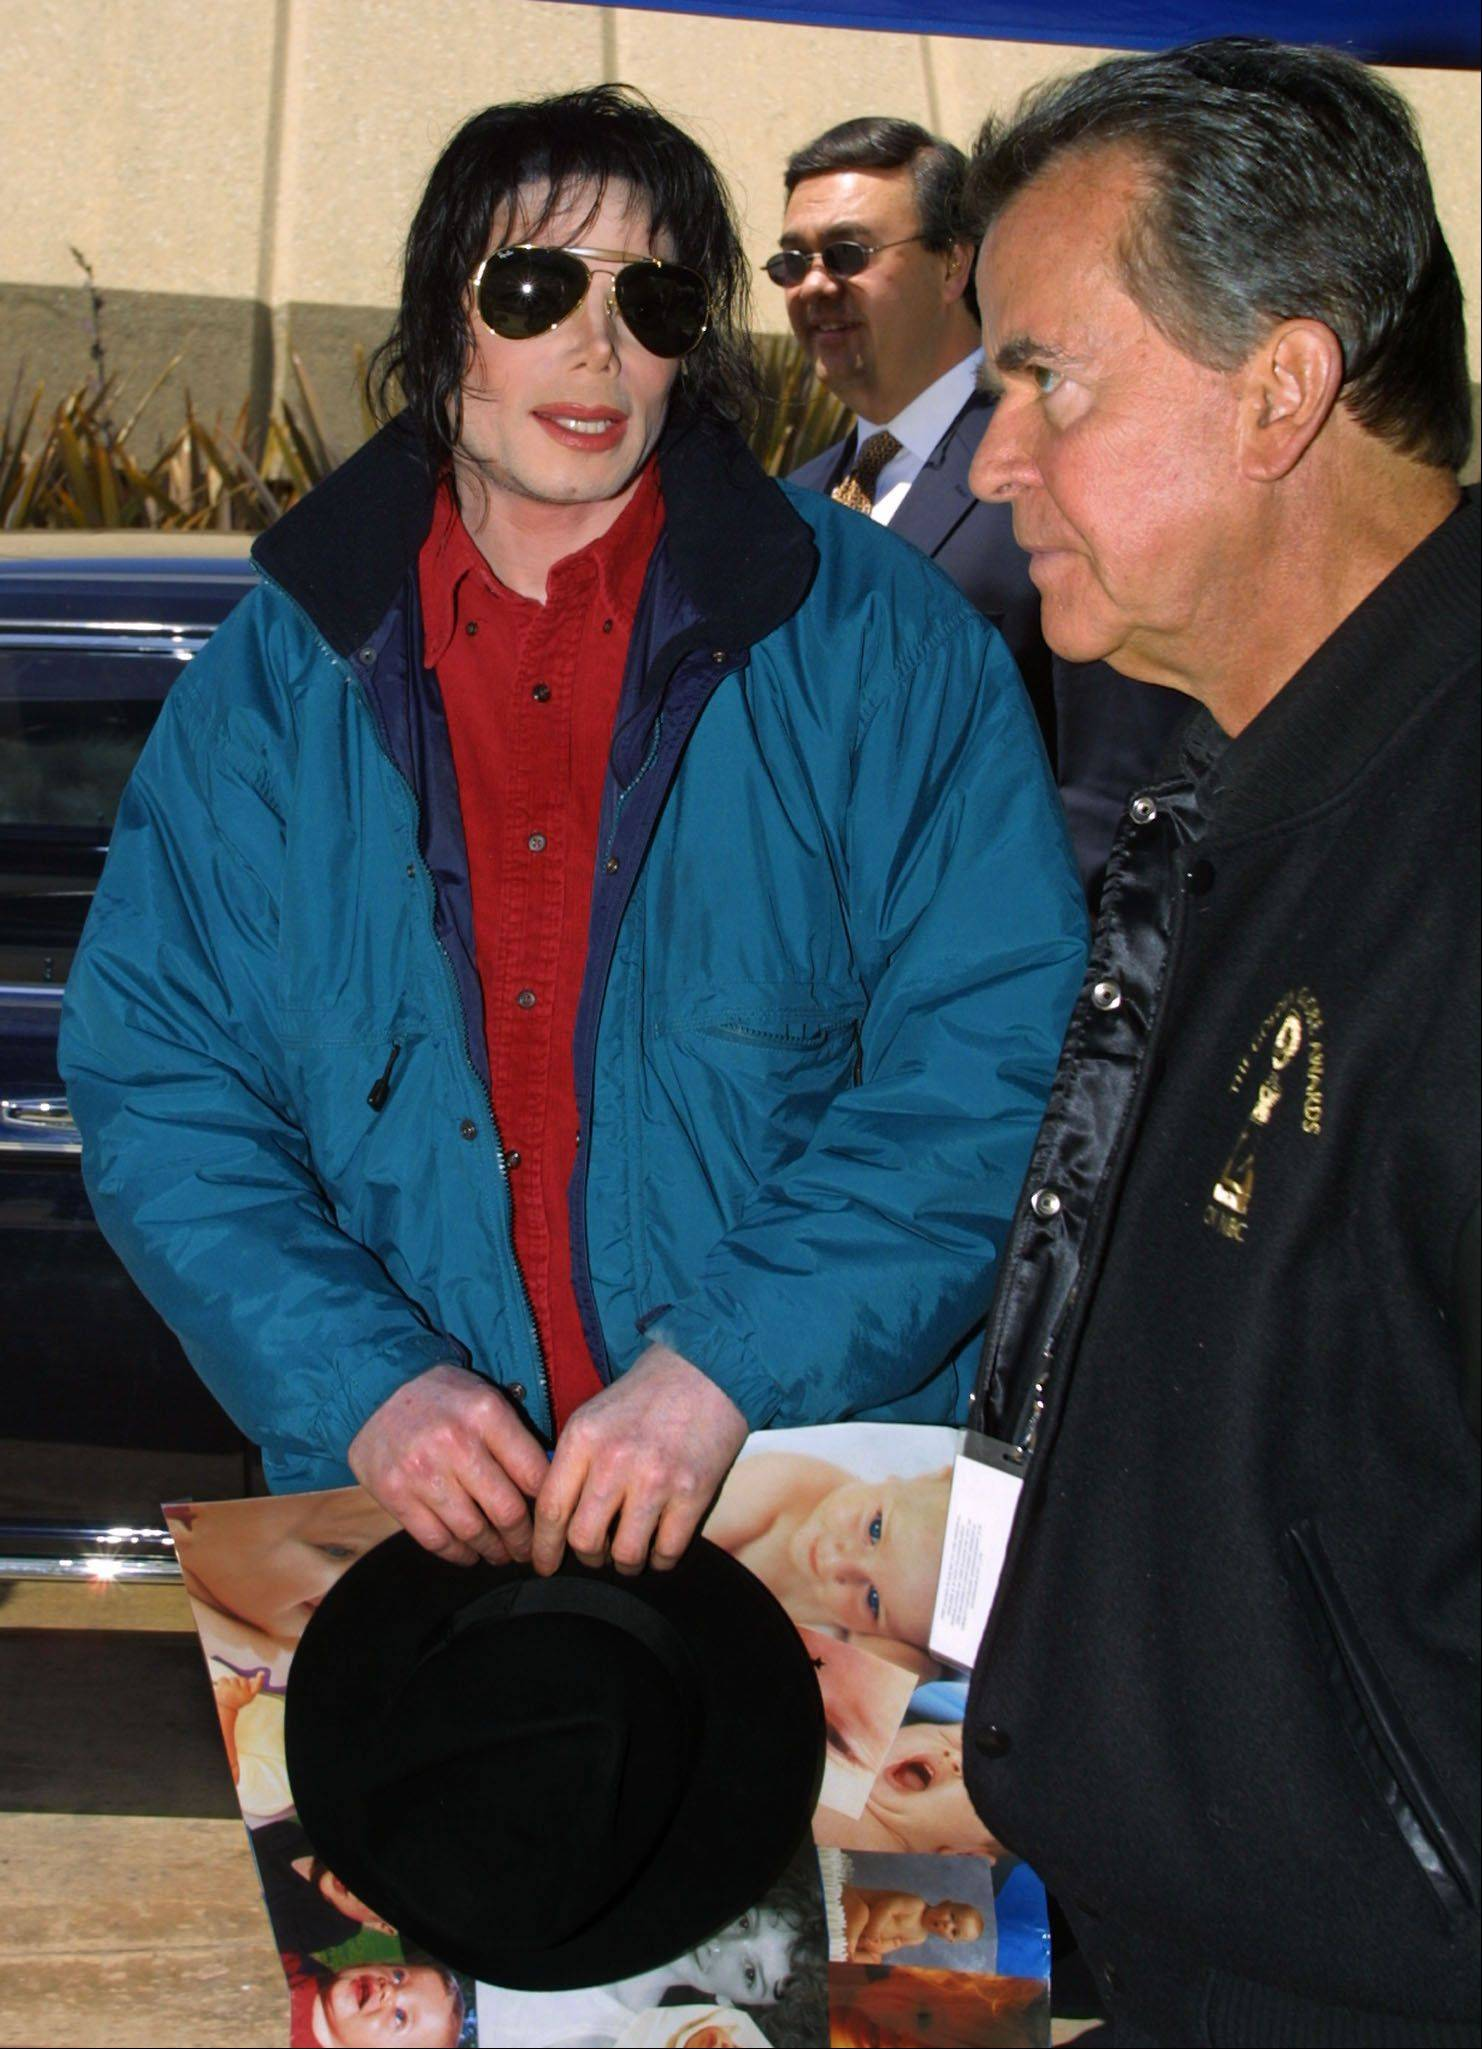 Performer Michael Jackson, left, talks with Dick Clark, host of the American Bandstand 50th...A Celebration as Jackson arrives for the taping of the show Saturday, April 20, 2002 in Pasadena, Calif.